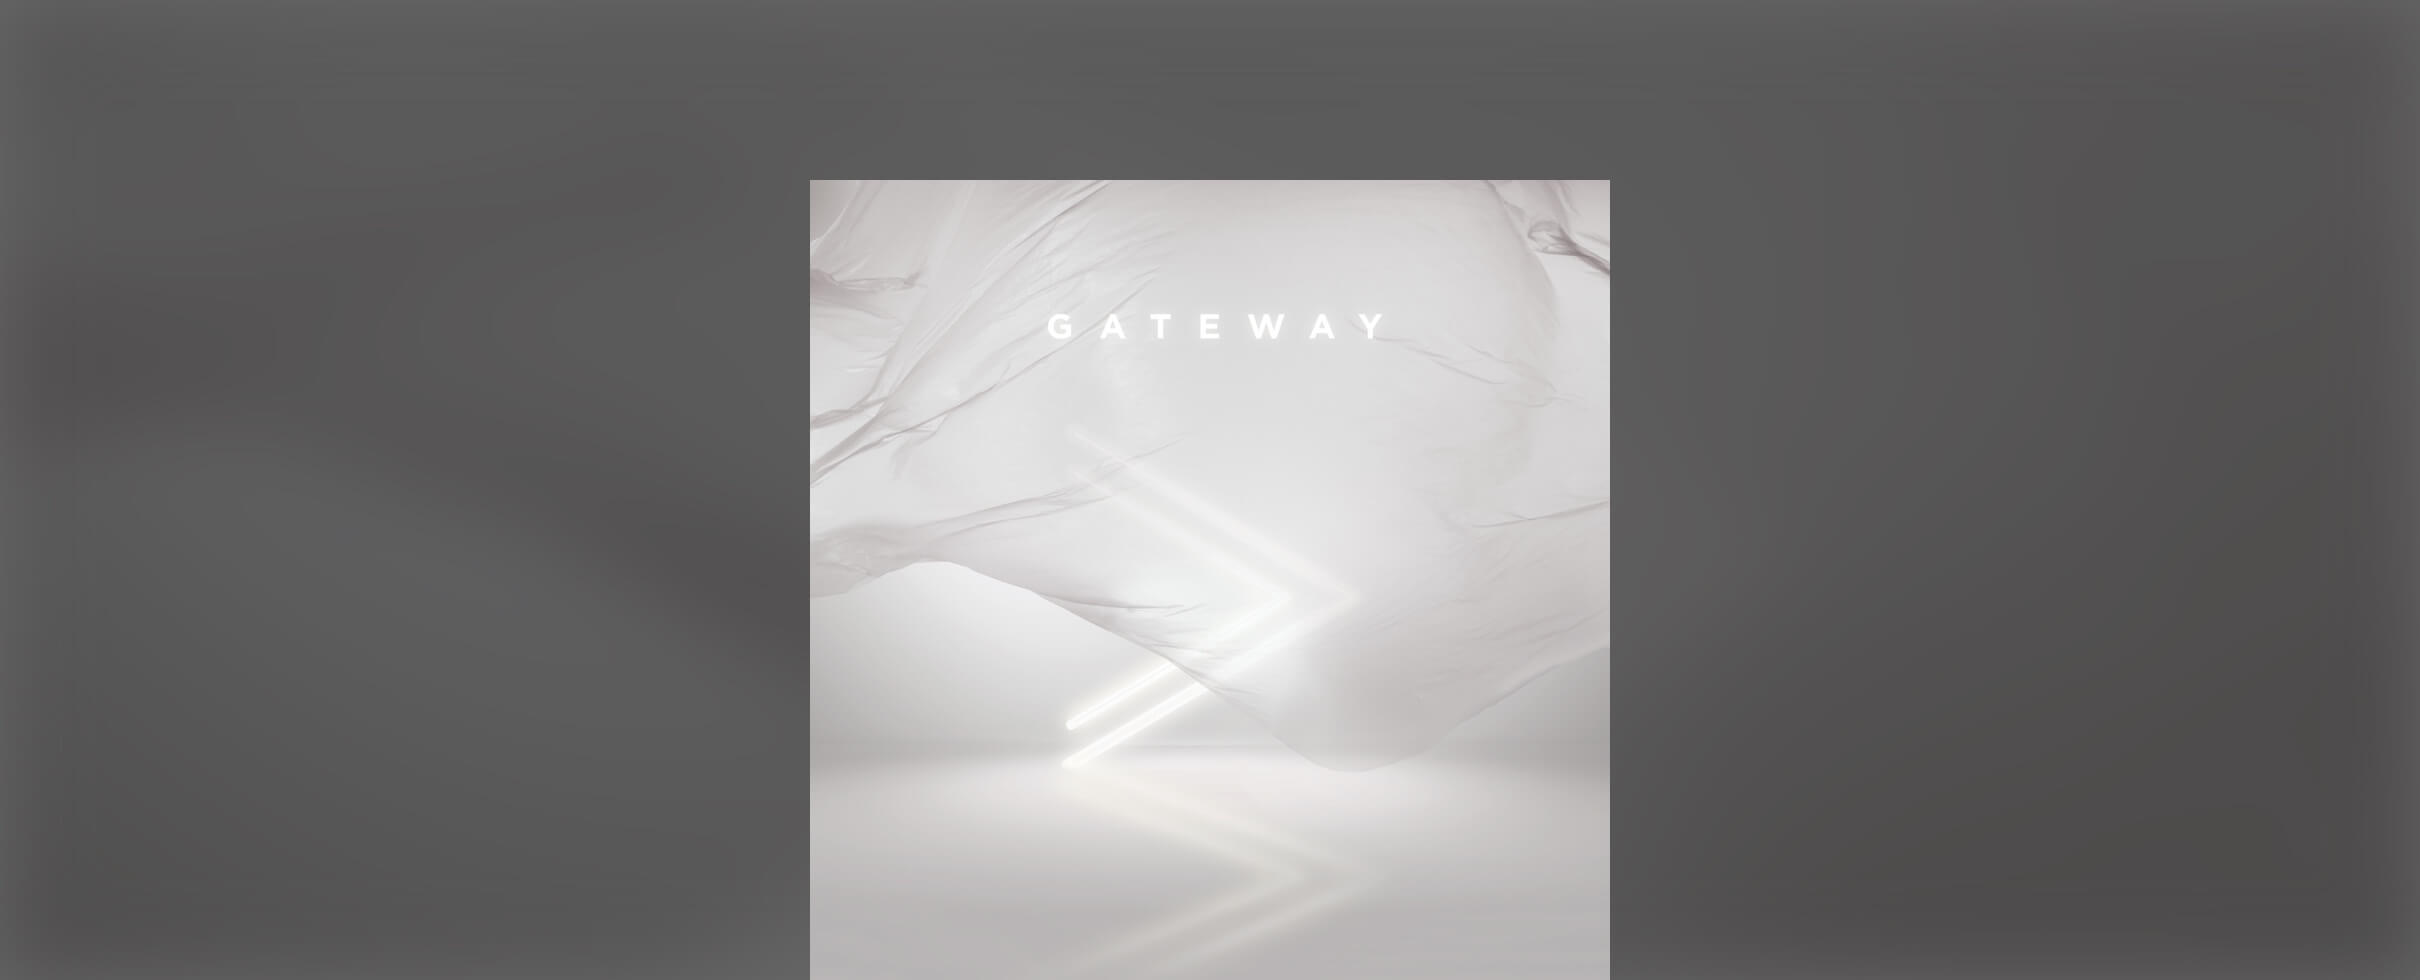 <h1>Original Master MultiTracks From</h1> <strong>GATEWAY</strong>